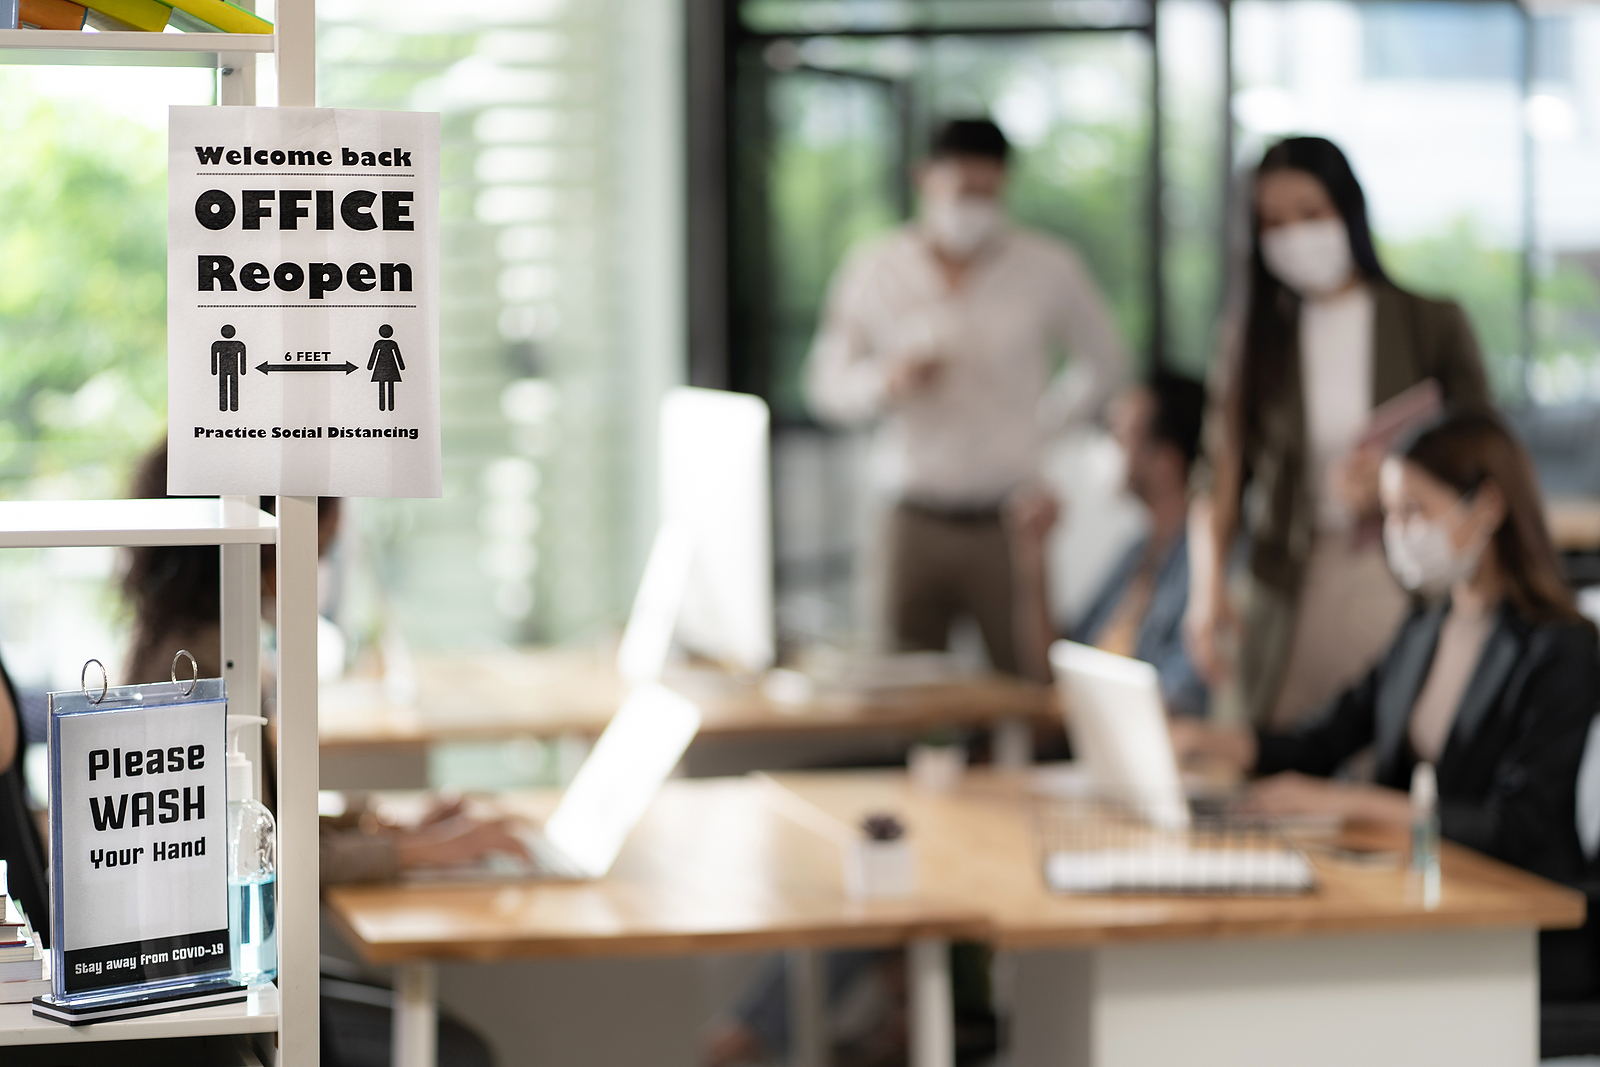 This is How to Get People Back in the Office Safely